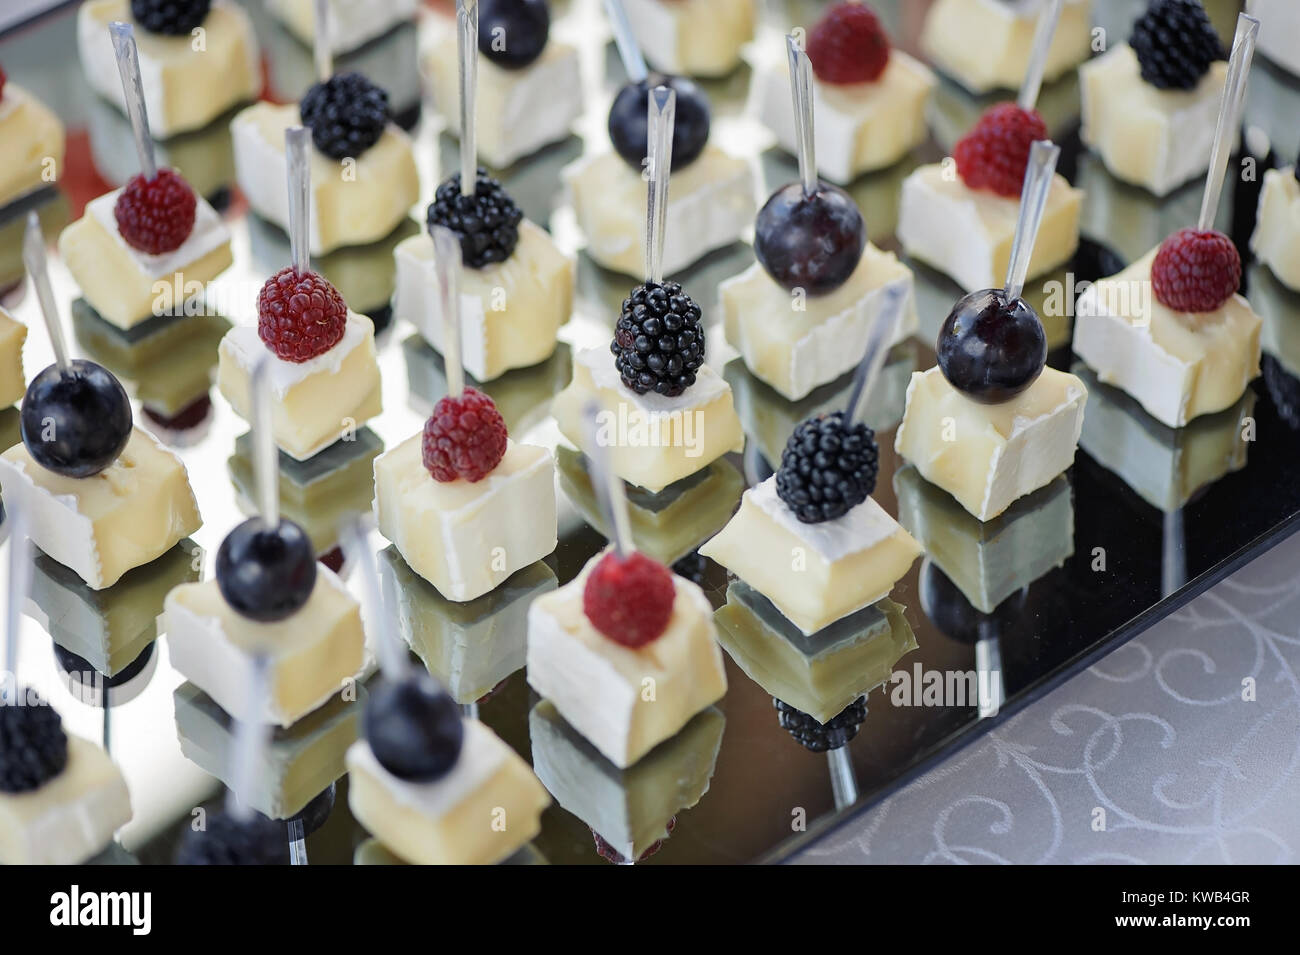 Canapes with cheese and berries closeup - Stock Image